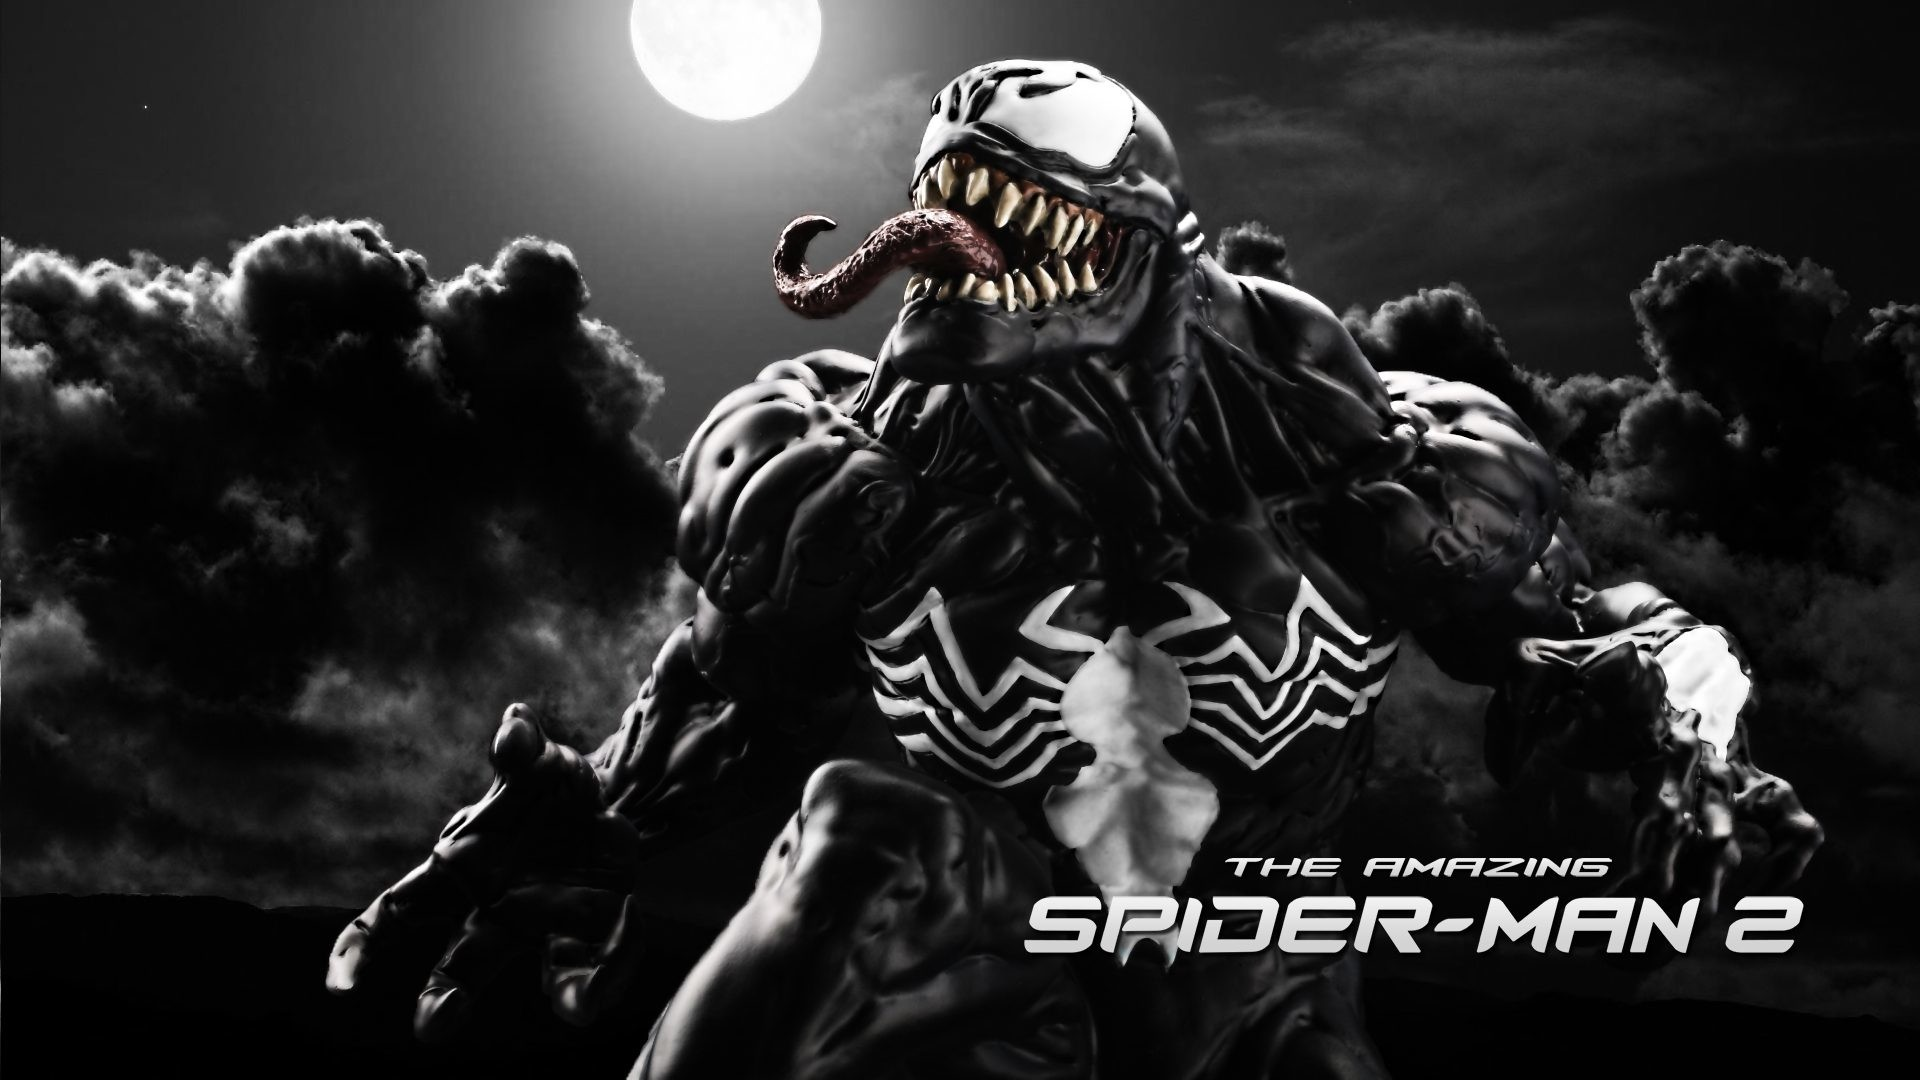 1920x1080 The Amazingpider Man 2 Venom 4K Uhd Wallpaper